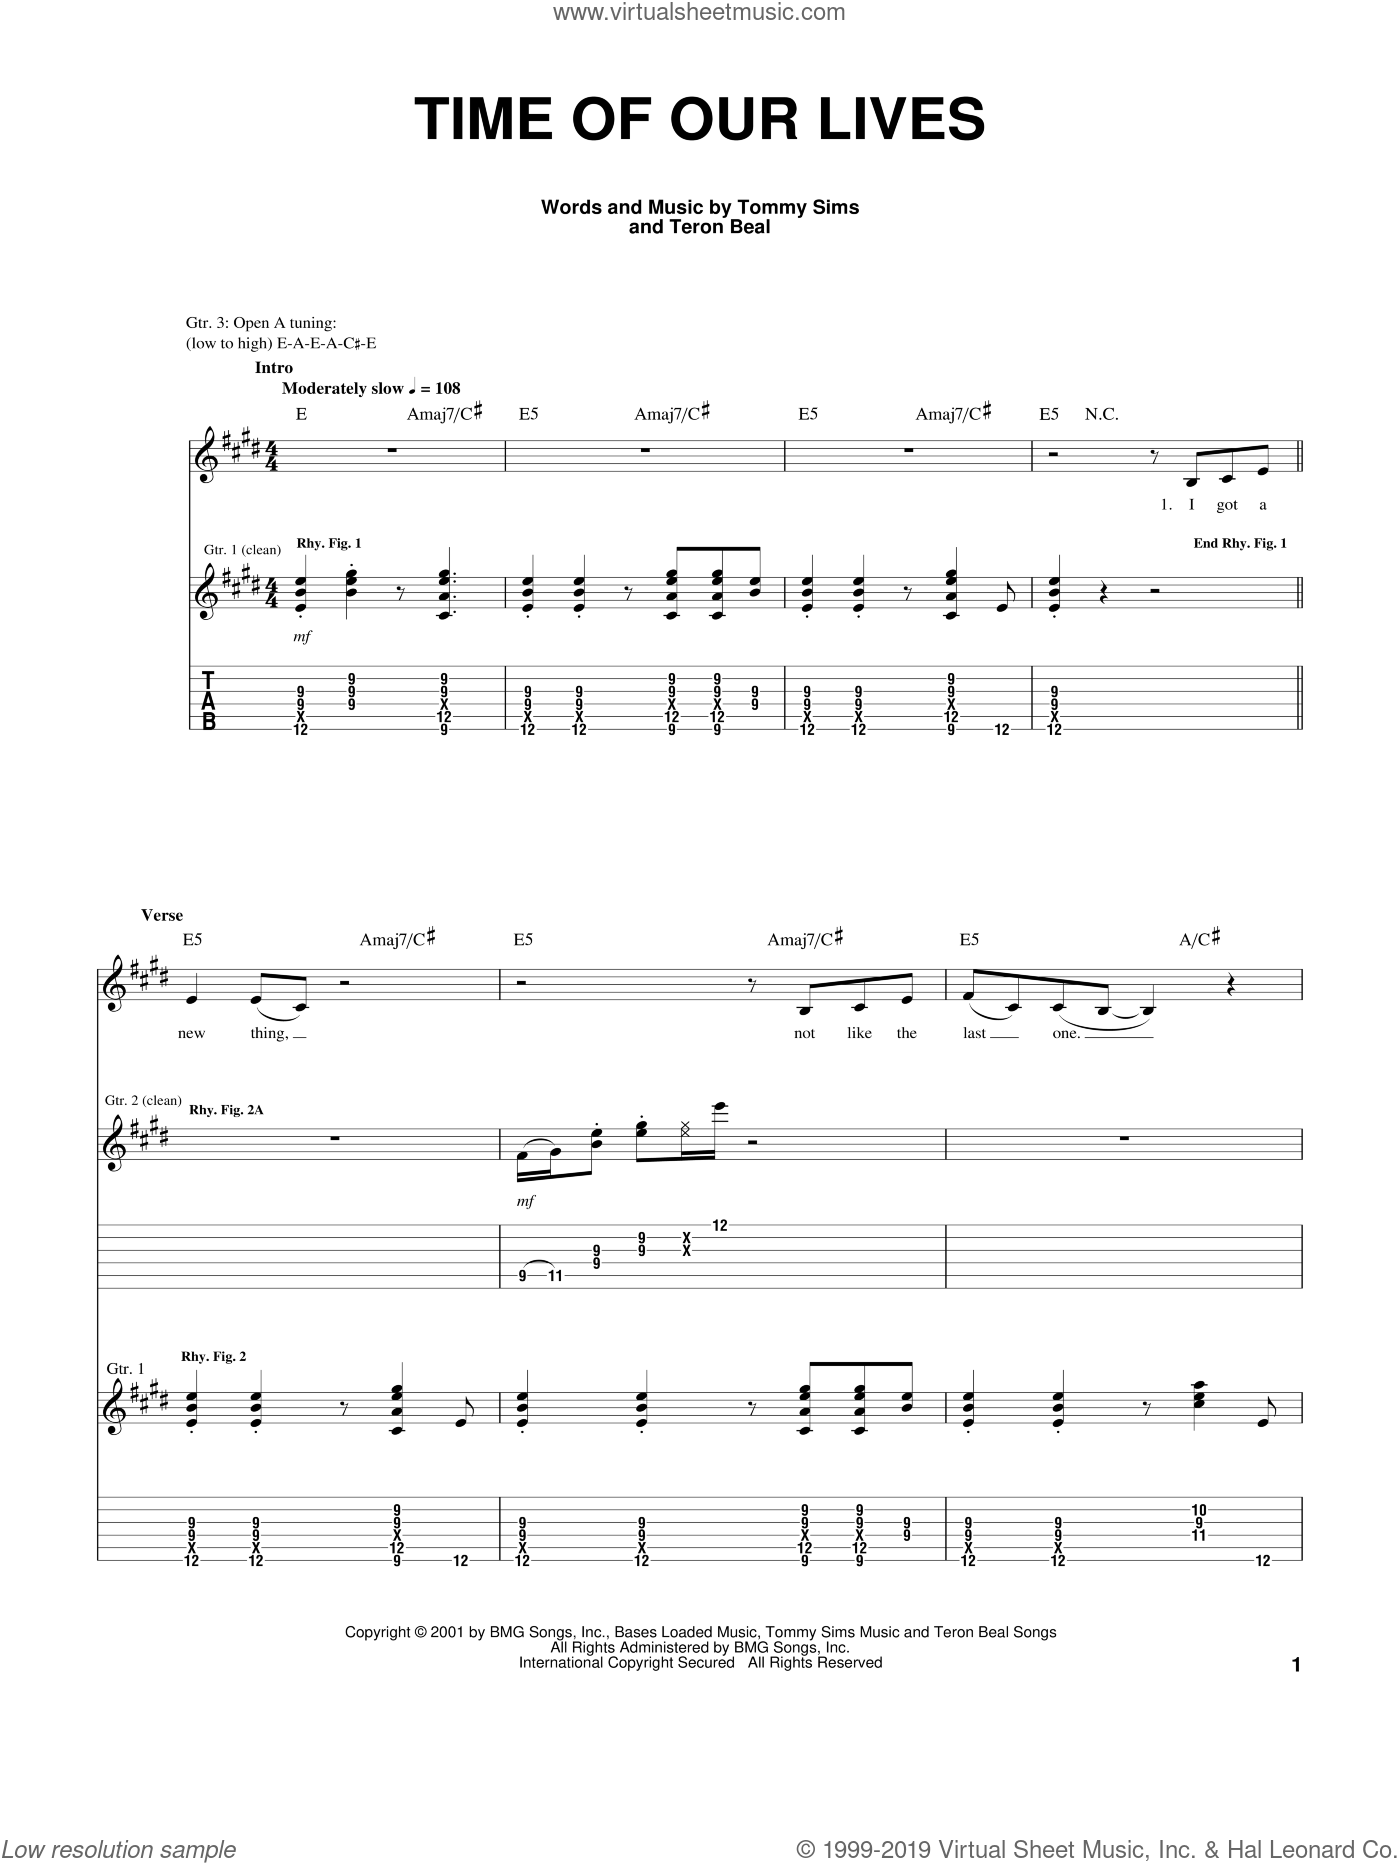 Time Of Our Lives sheet music for guitar (tablature) by Tommy Sims and Teron Beal